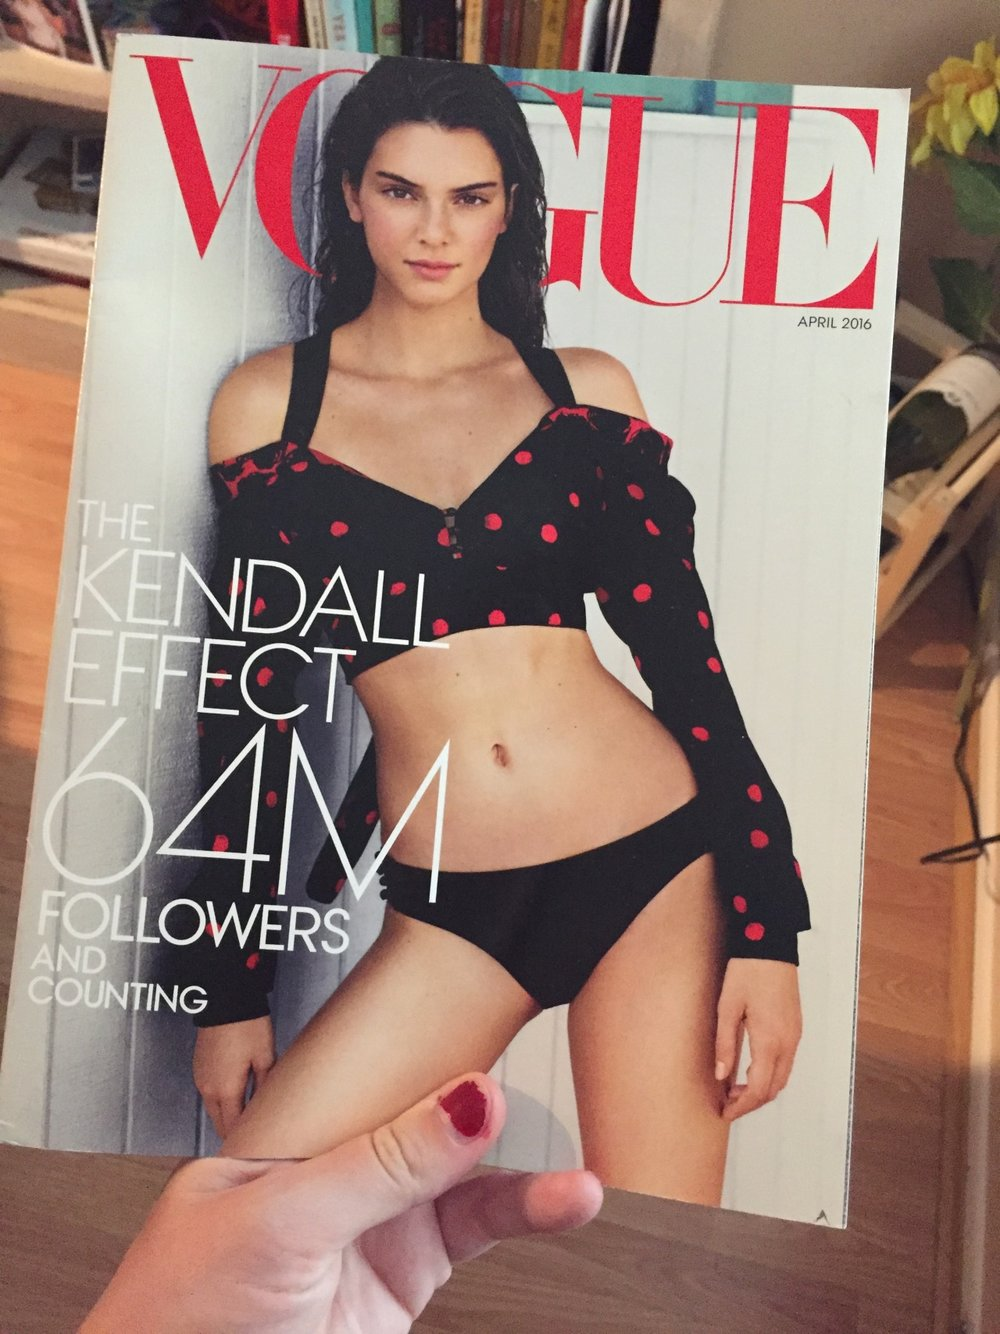 Listener Heather found this Kendall-cover Vogue in the pile of magazines her volunteer gig wanted to get rid of. Hello, potential eBay score.